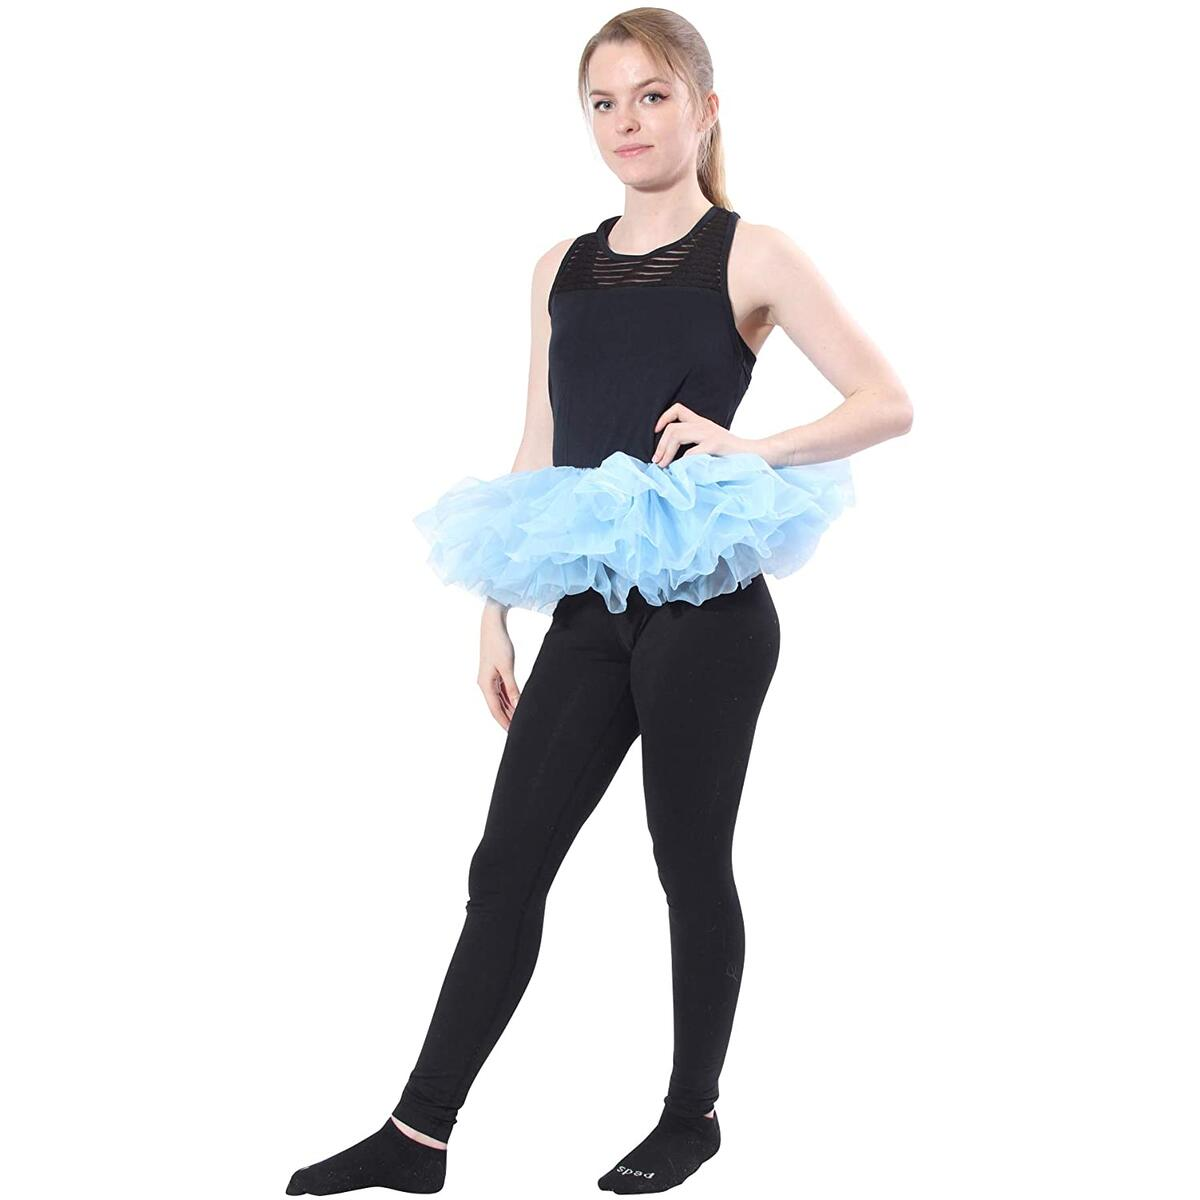 Adult Poofy Ballet Style Tutu for Valentines, Easter, Costumes, Princess Tutu